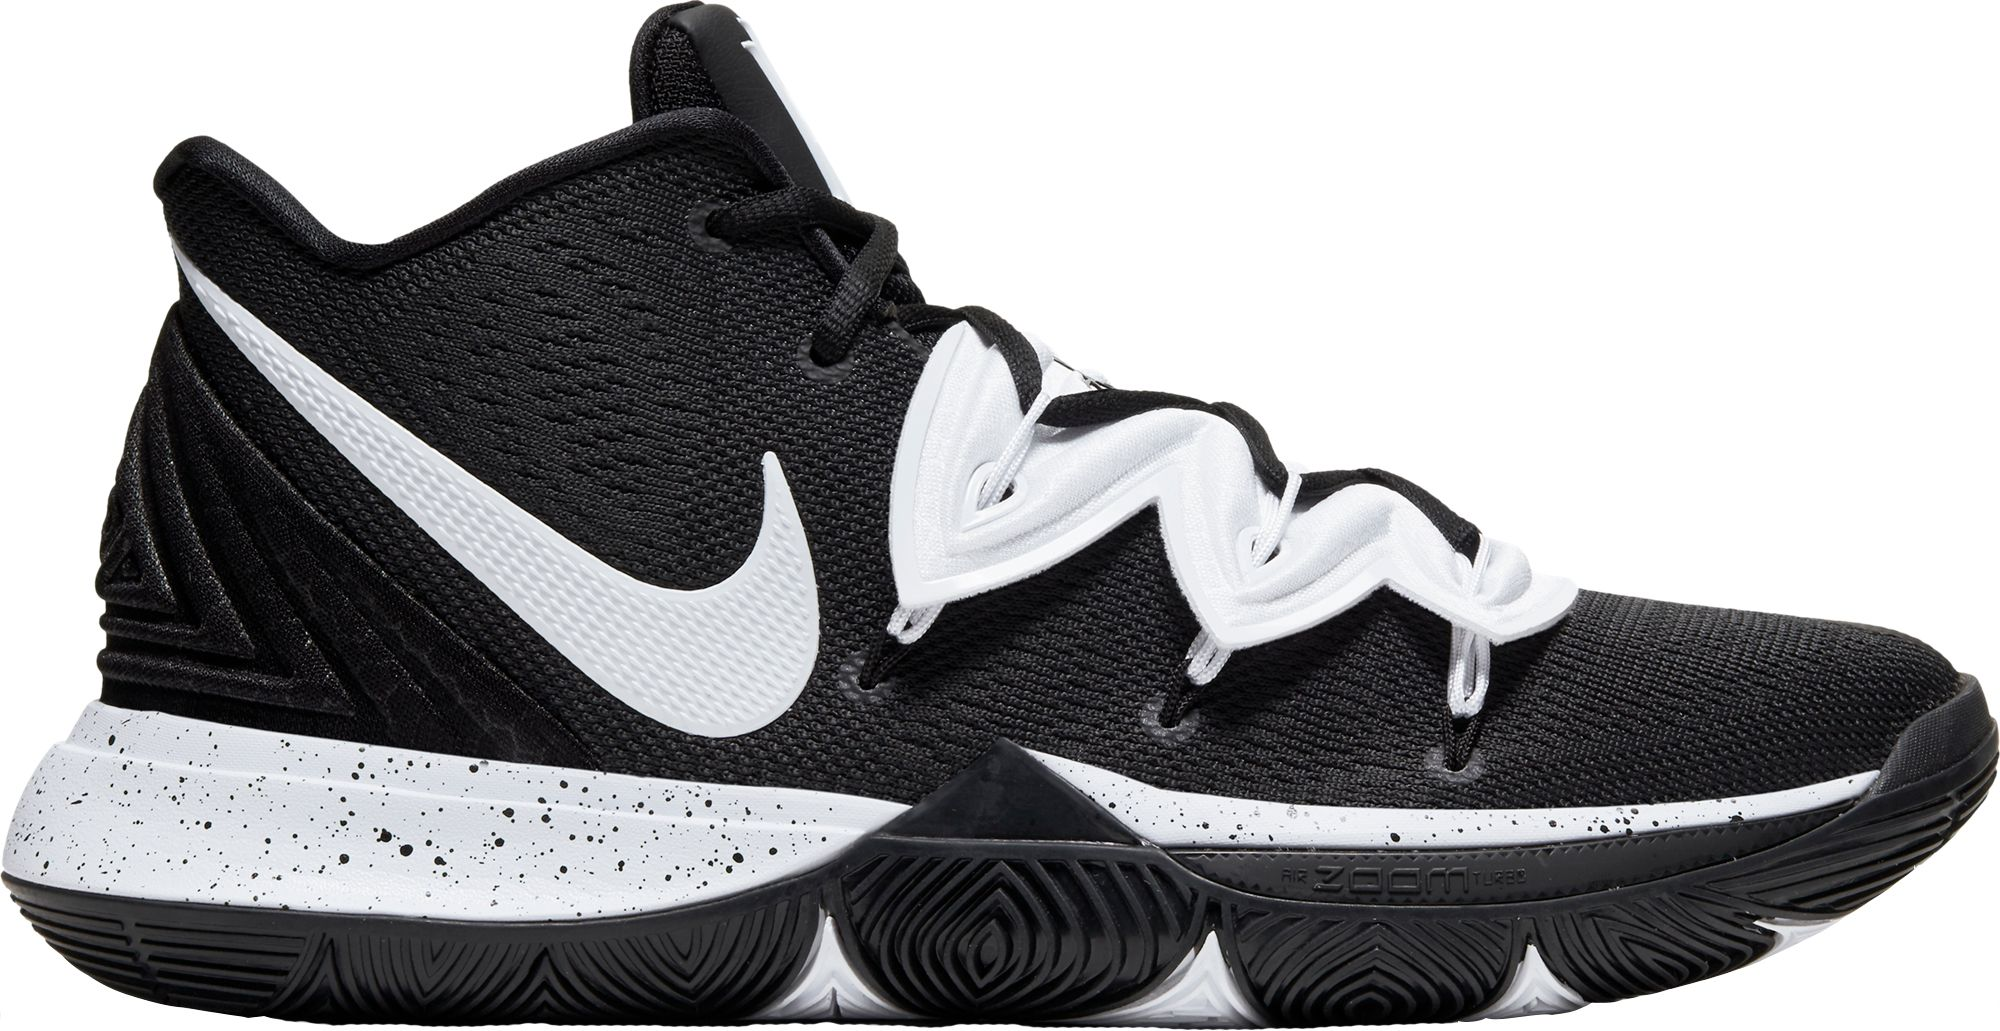 Nike Kyrie 5 Basketball Shoes | DICK'S